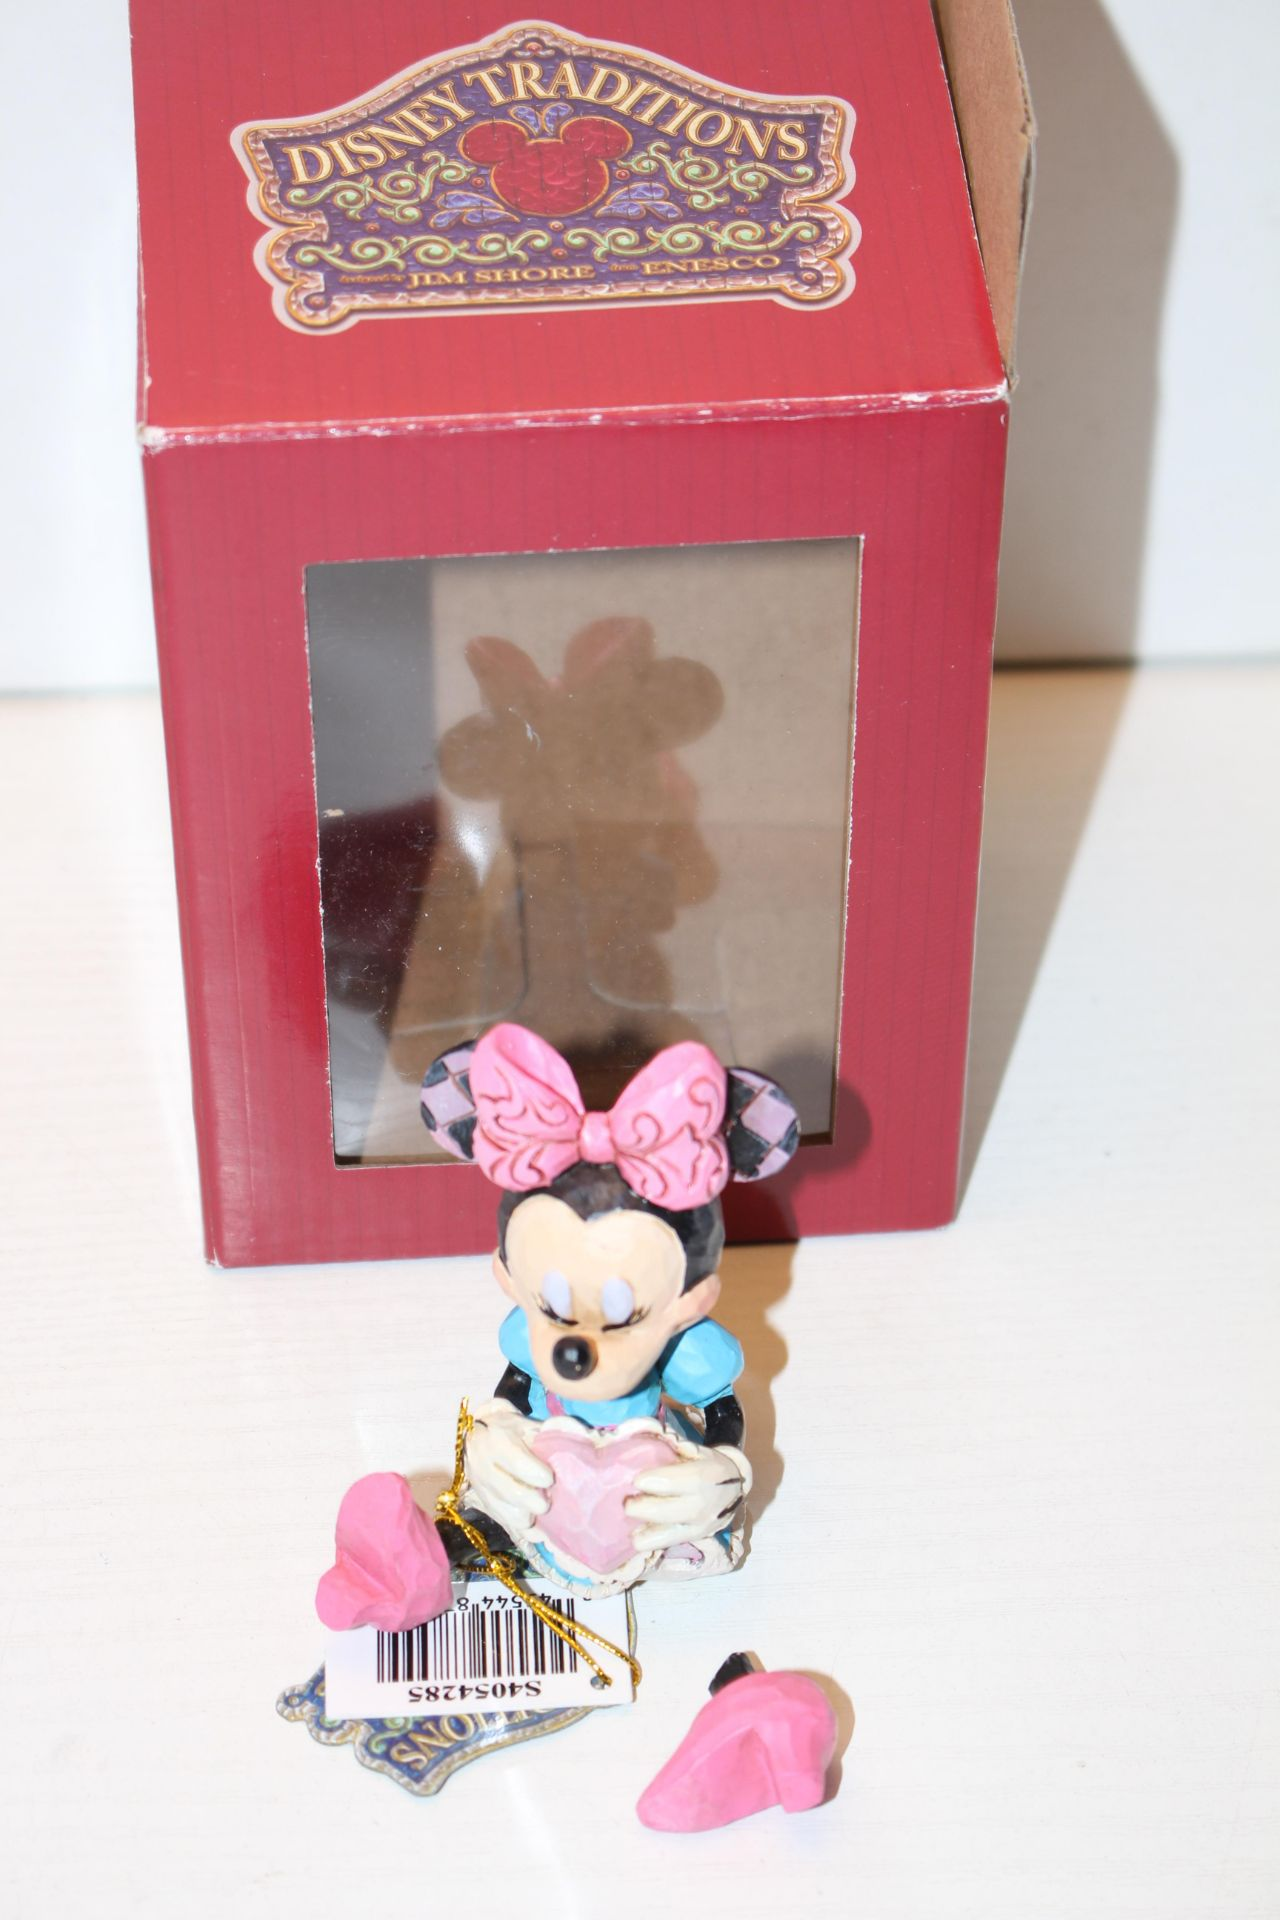 BOXED DISNEY TRADITIONS MINNIE MINI FIGURINE Condition ReportAppraisal Available on Request- All